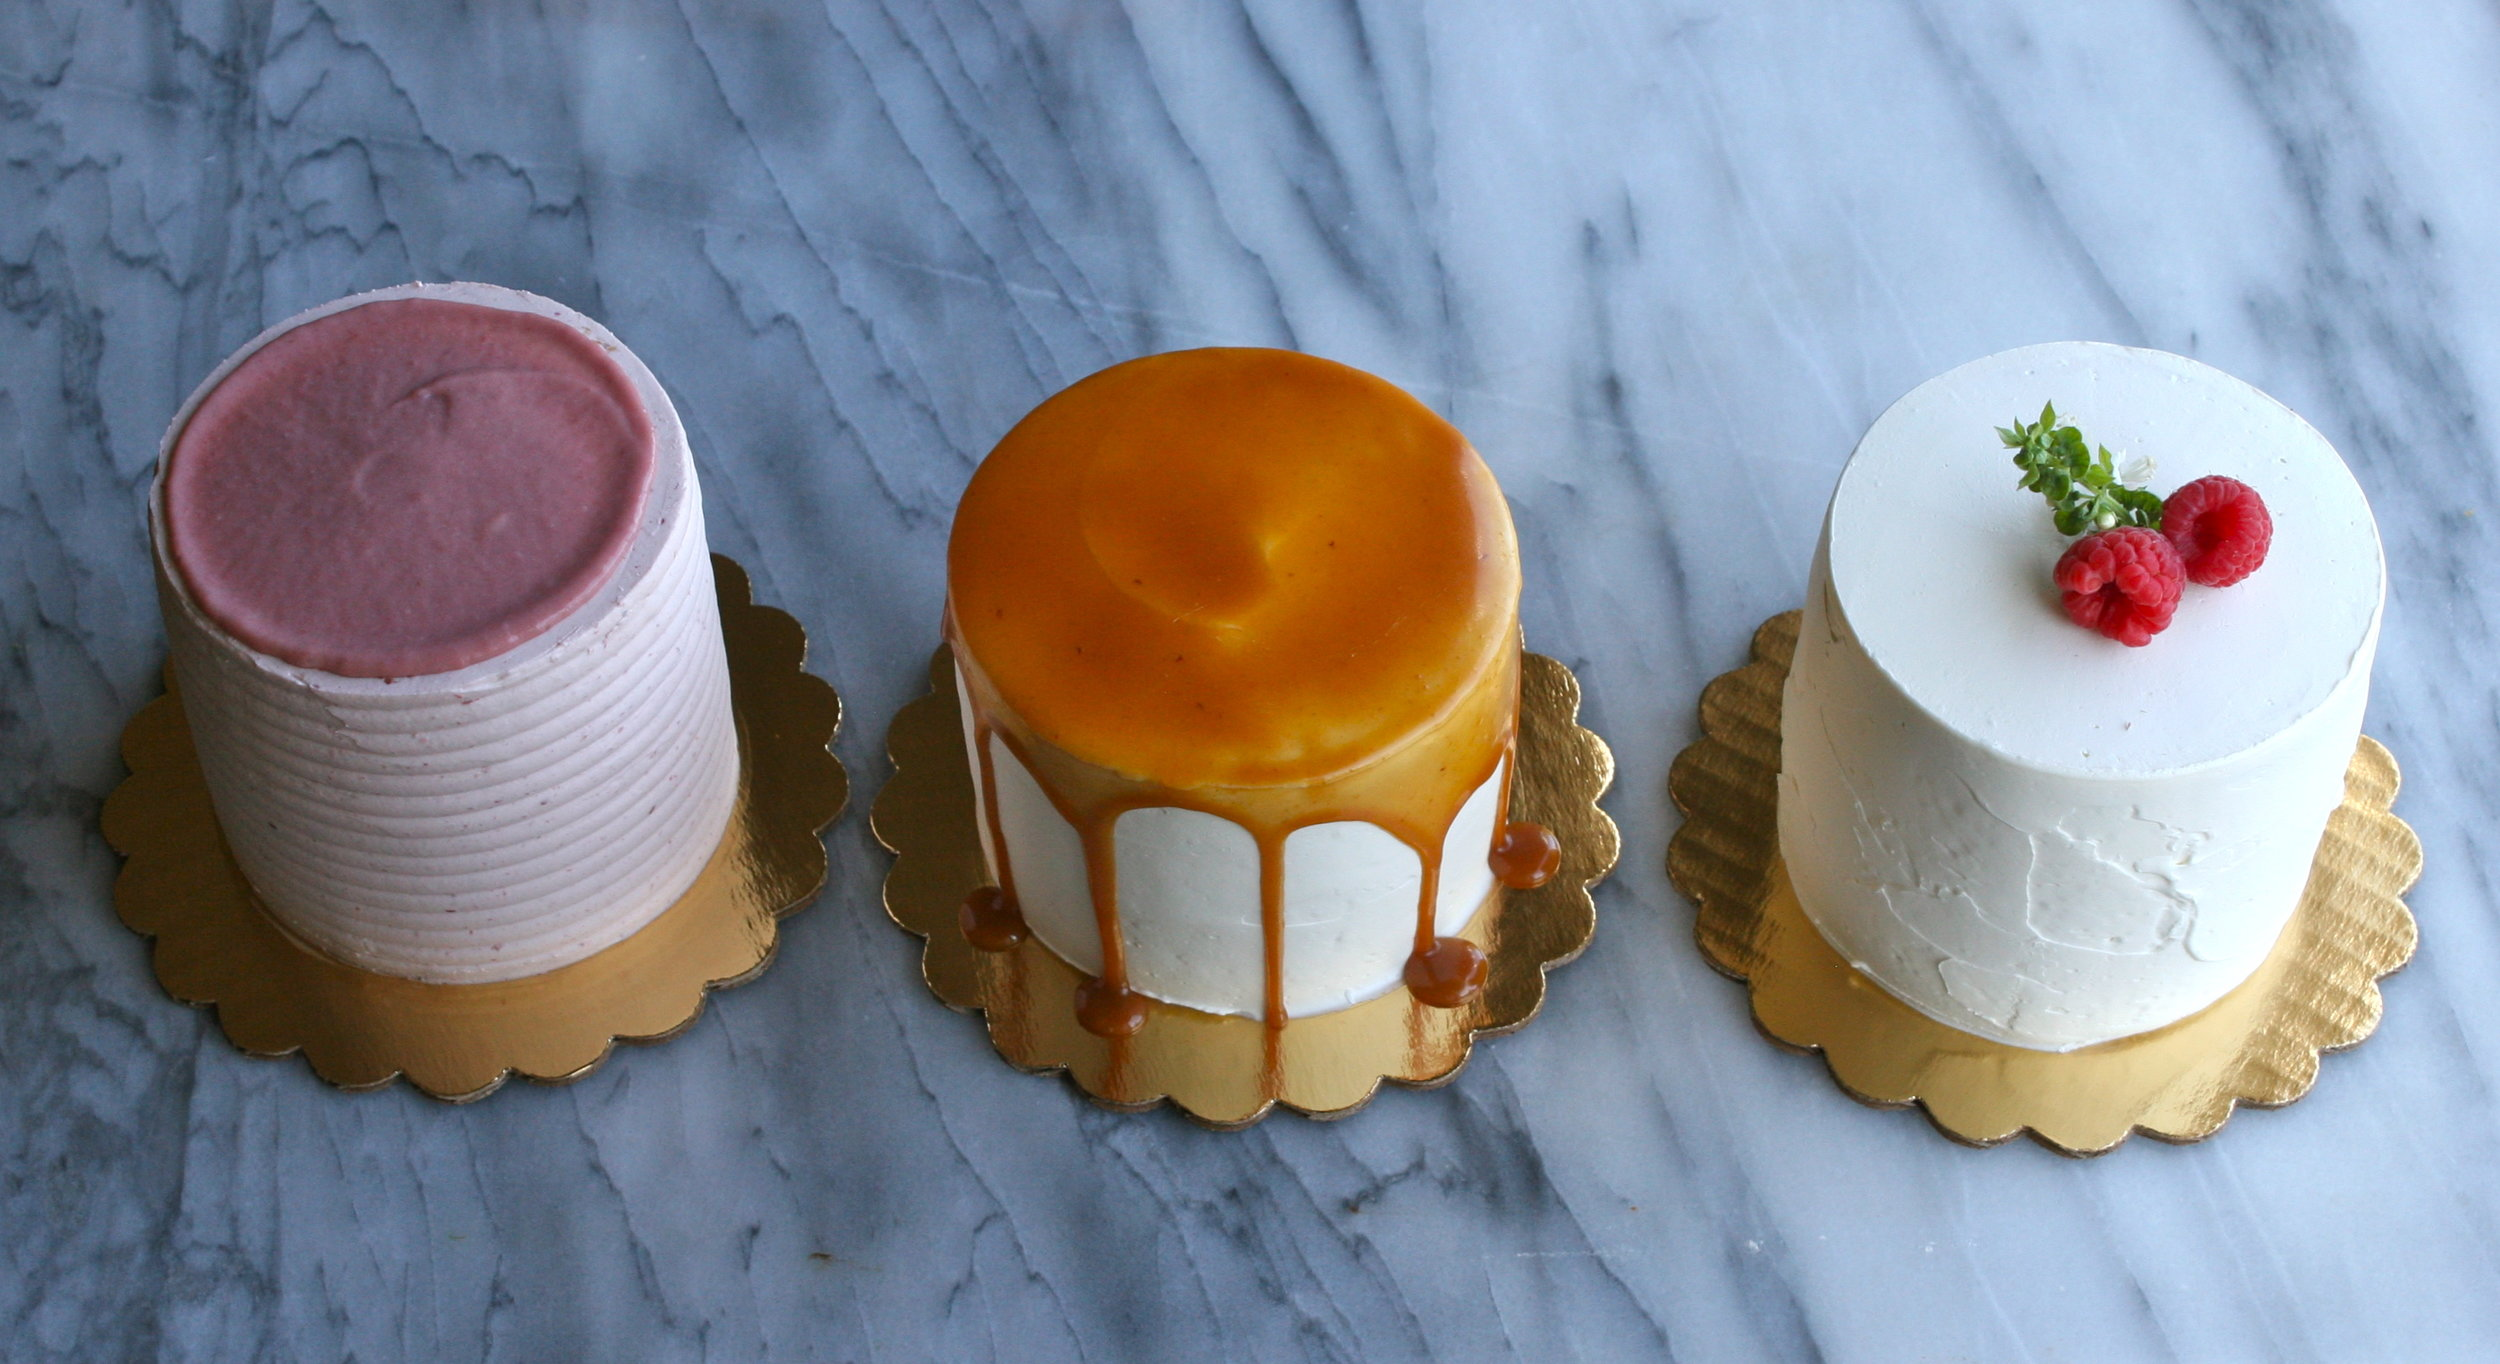 custom tasting trio | Cake Bloom, Sonoam, California